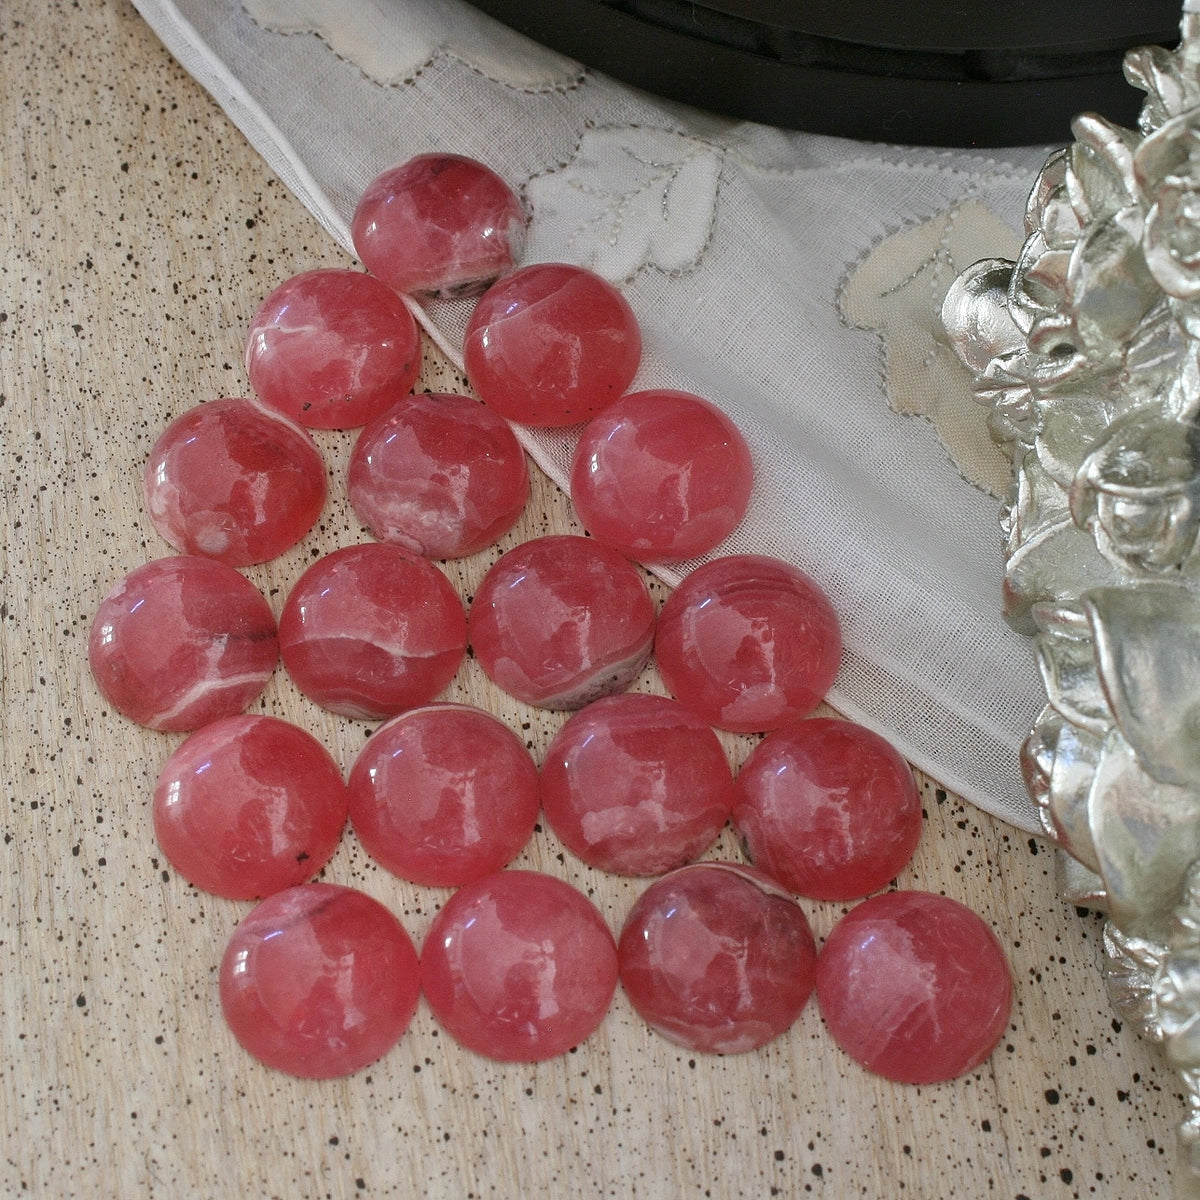 ONE Rhodochrosite Gemmy Round Cabochons from Argentina, 14 to 16 ct. each